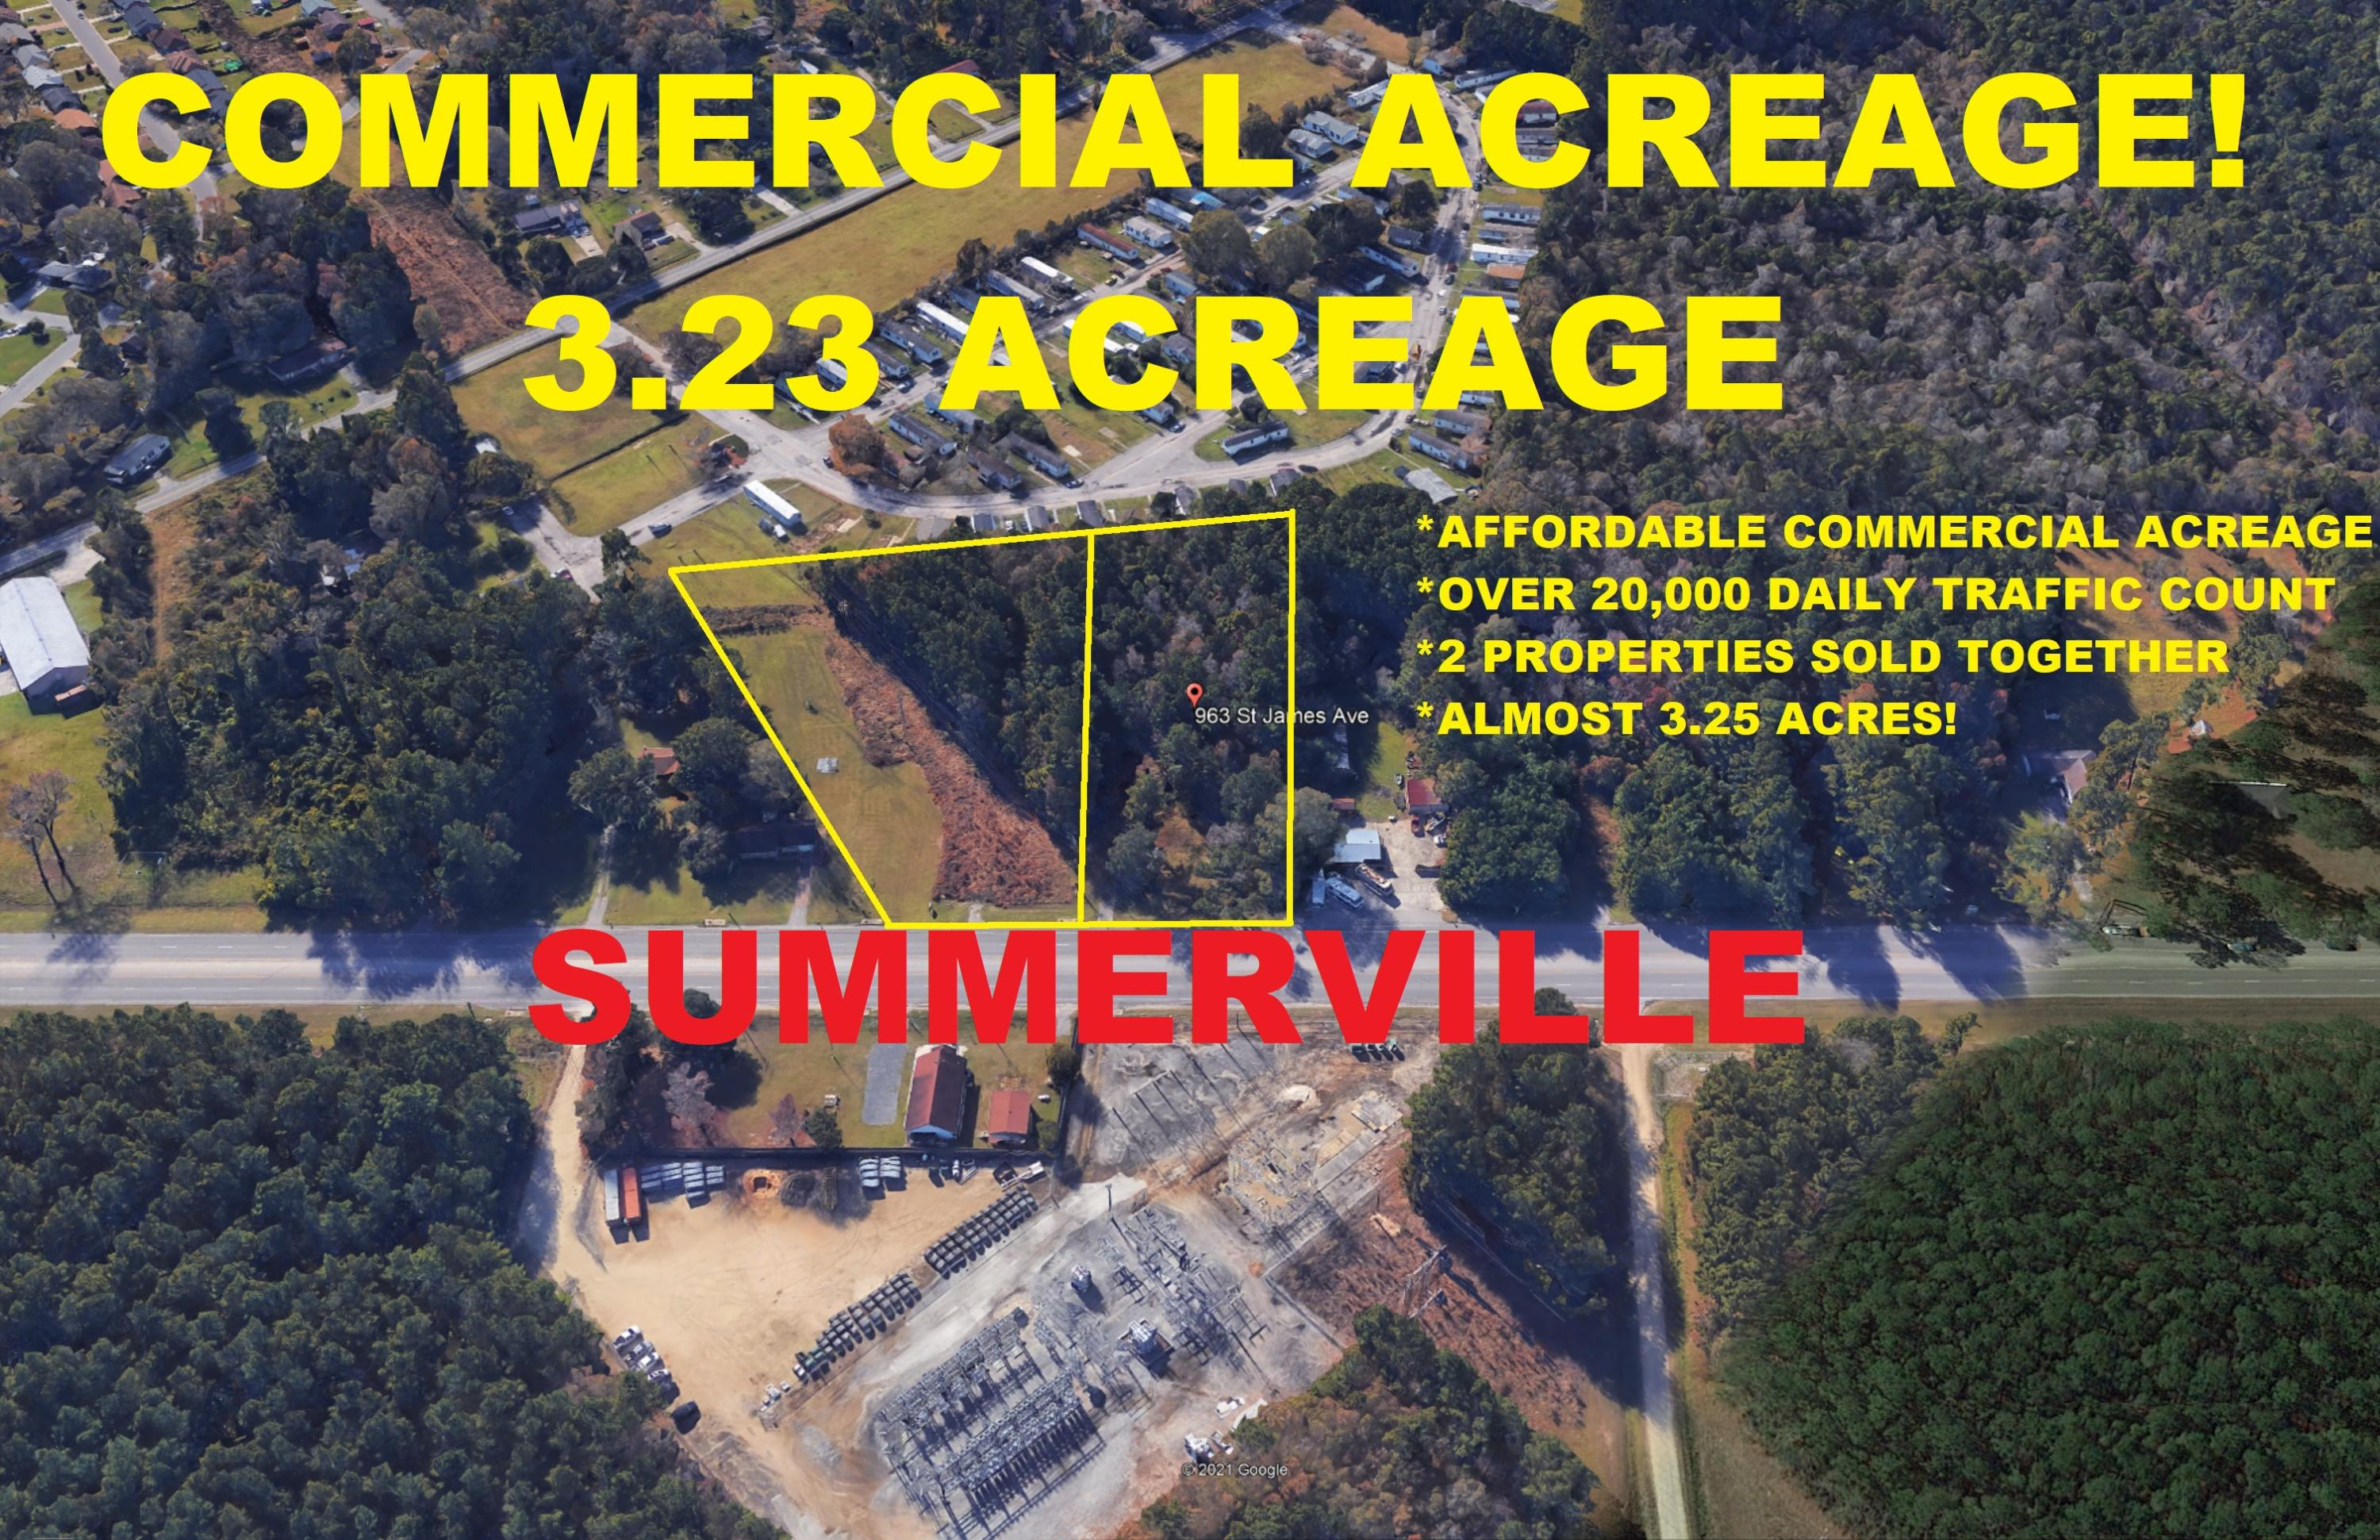 963 St James Avenue Summerville, SC 29483